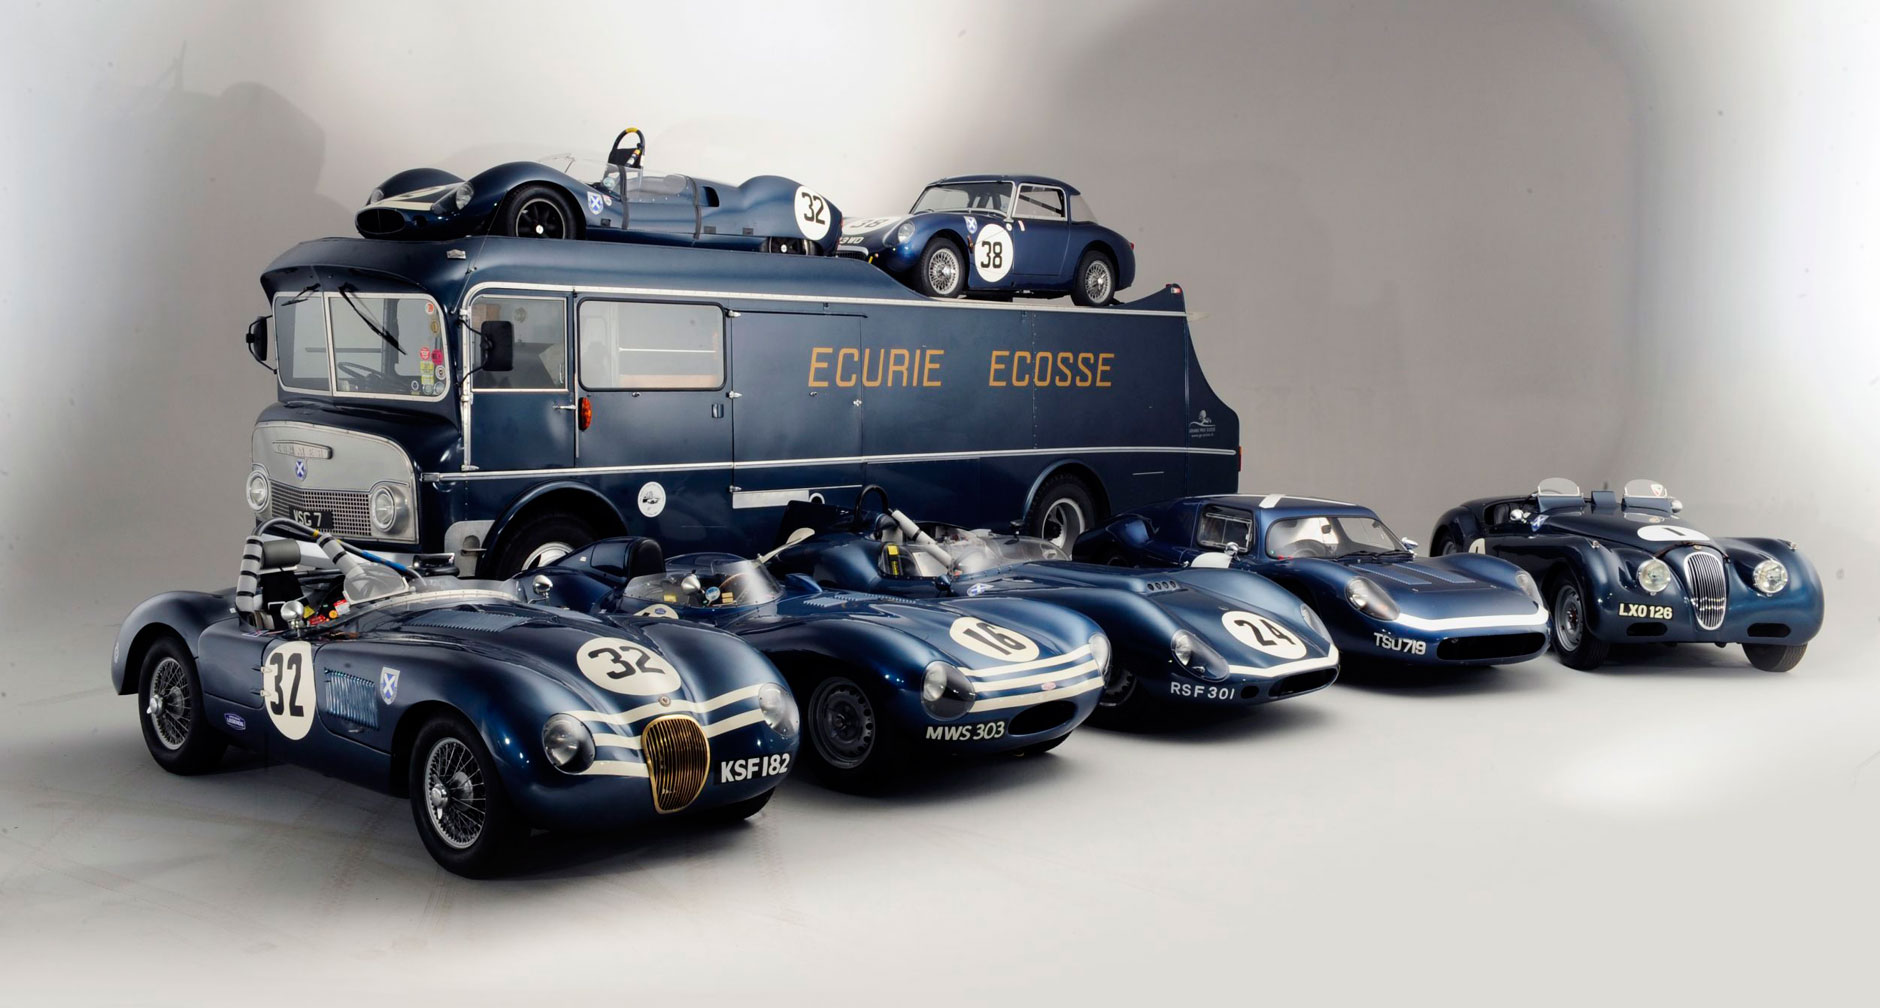 Bonhams To Offer Ecurie Ecosse Collection At Flagship 1